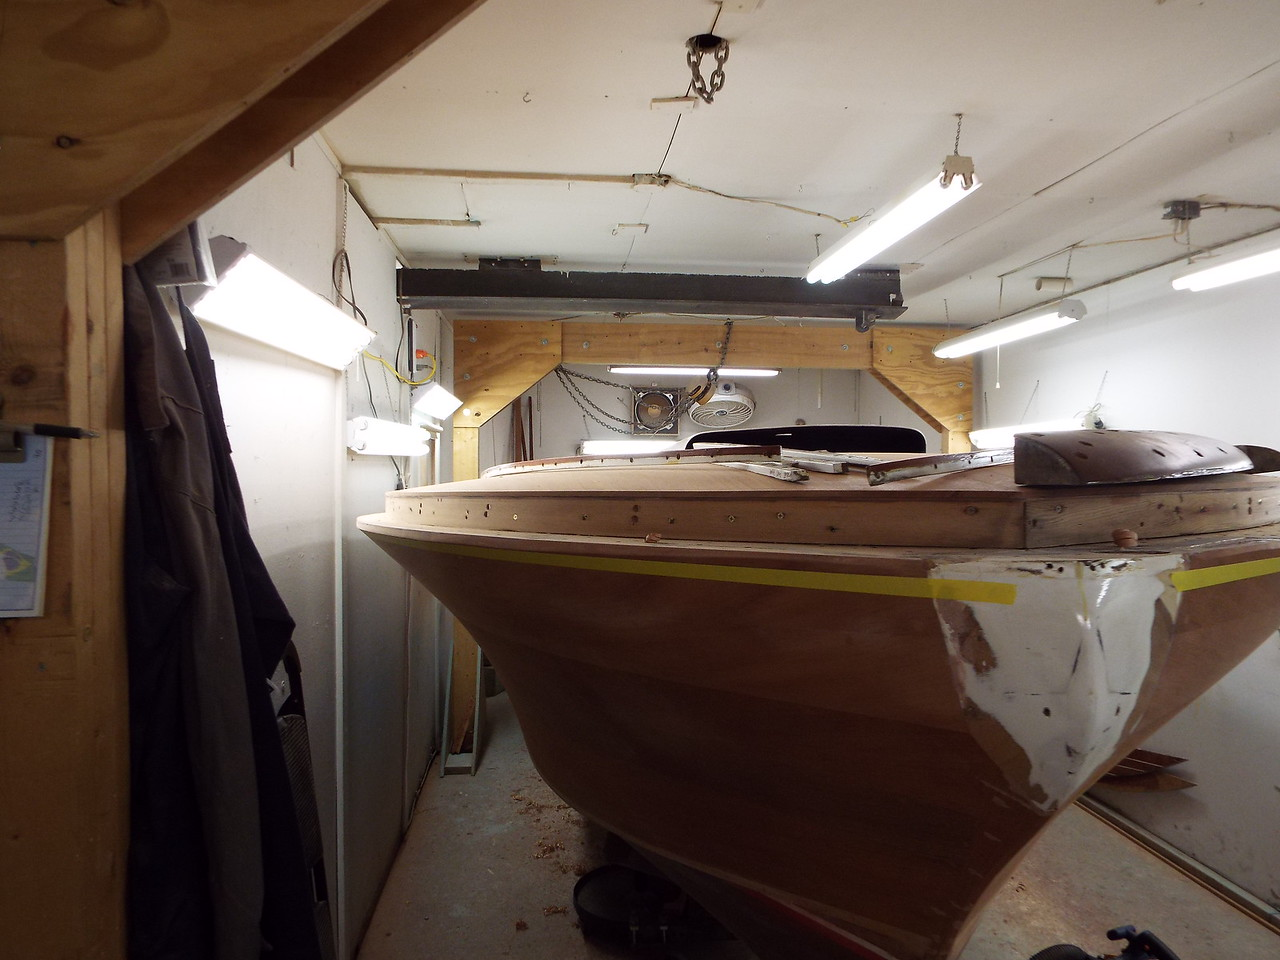 Fairing the starboard shear line before starting to fit the new cover boards.